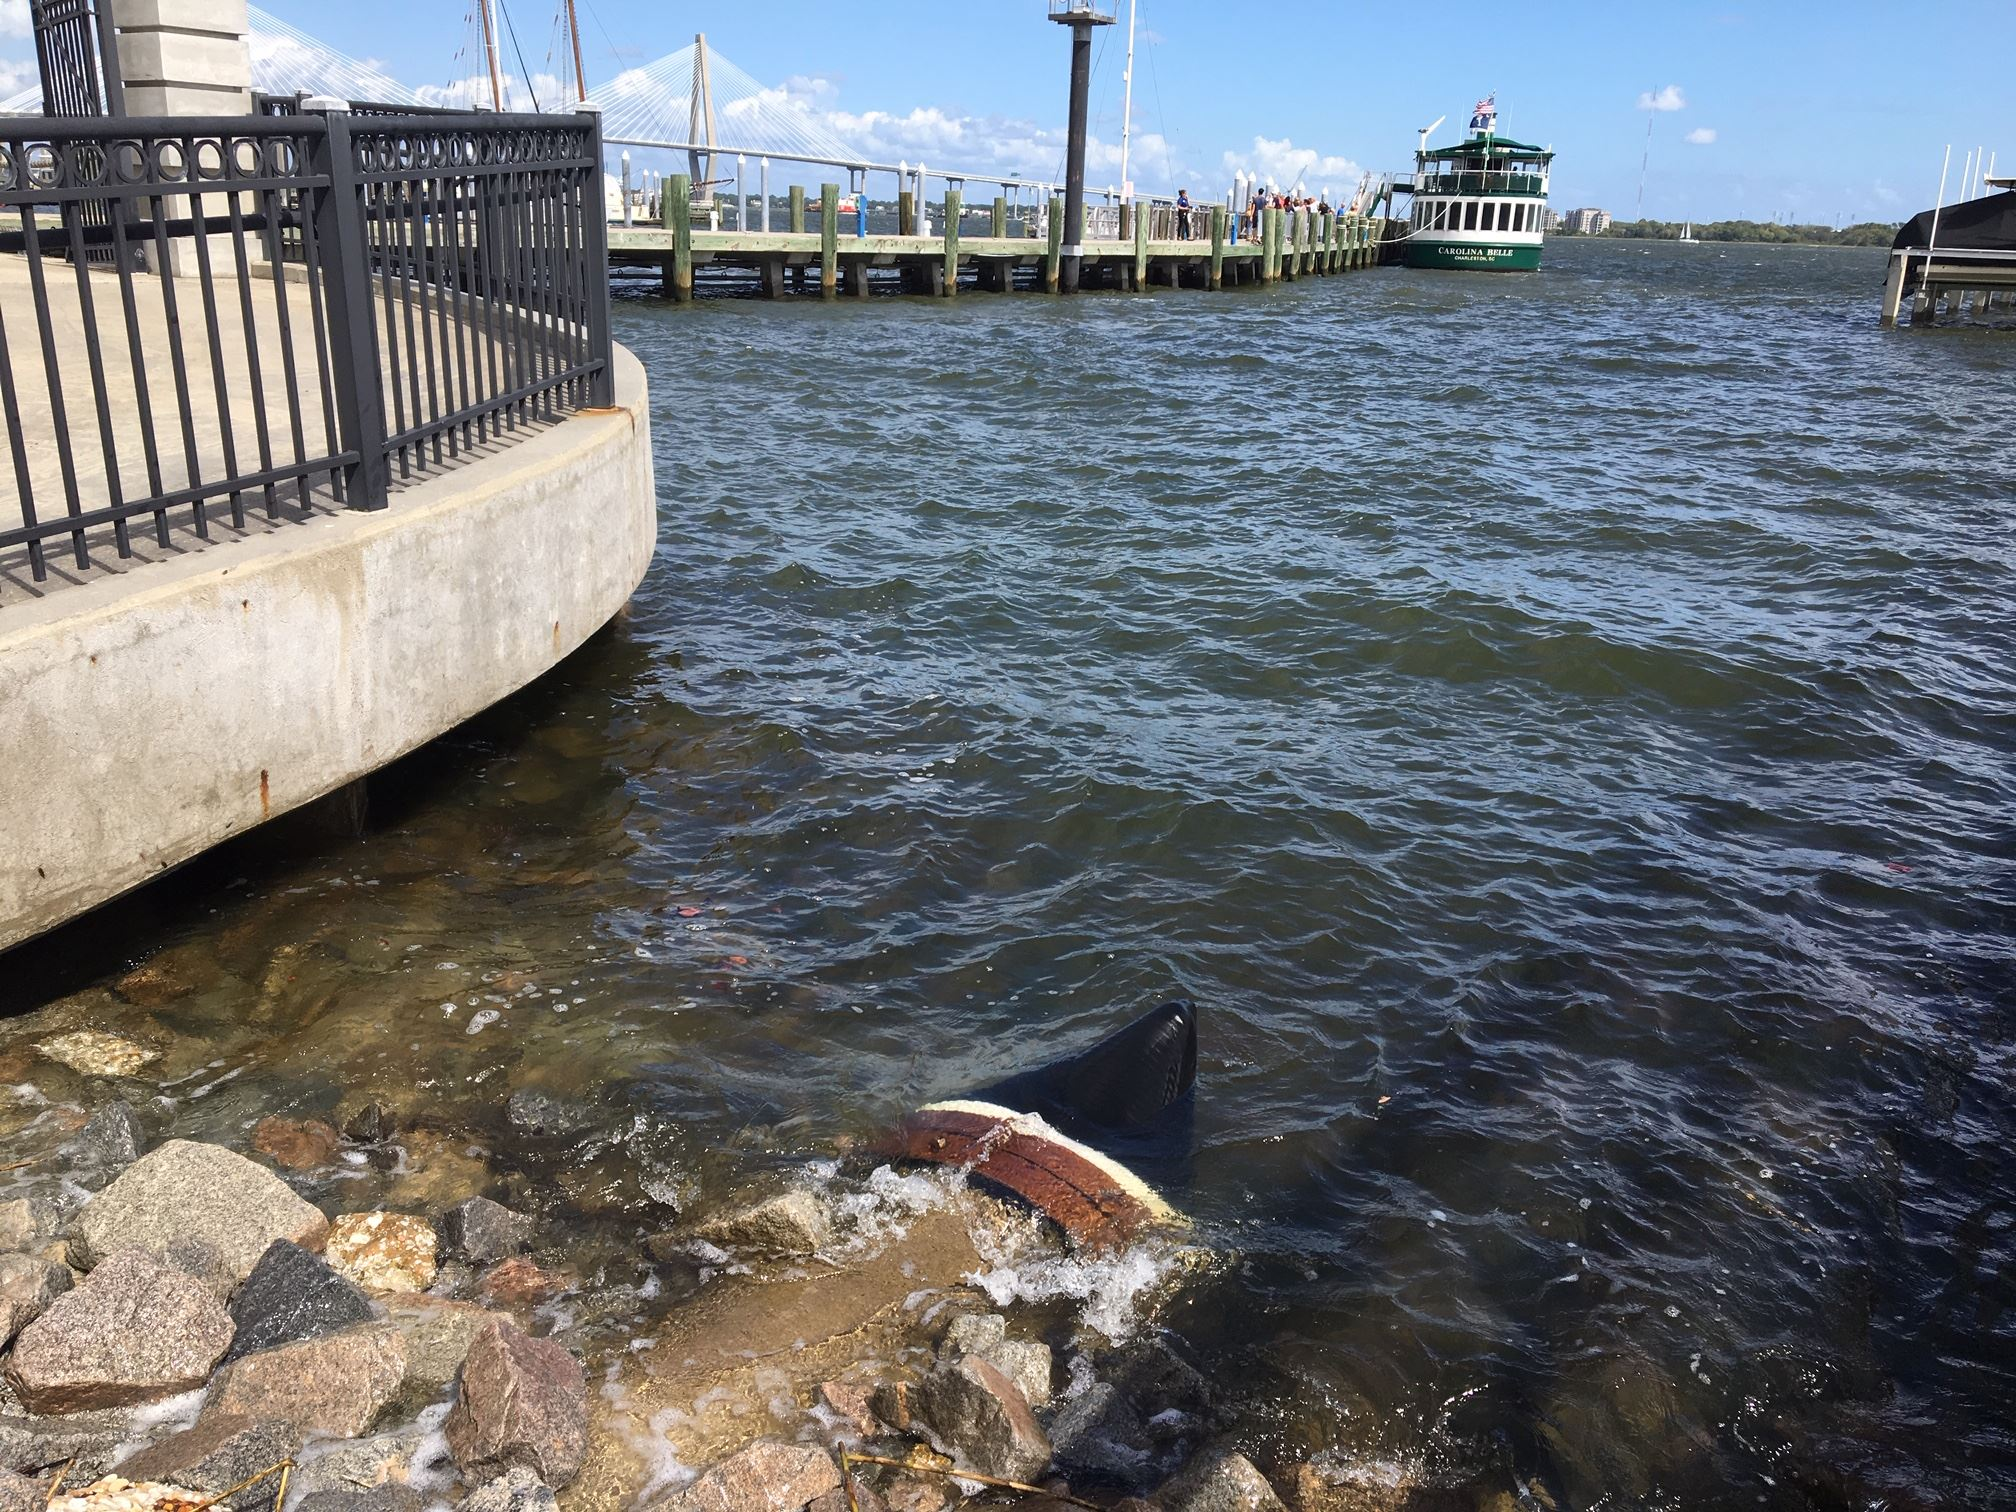 Stormwater outfall pipe enters into Cooper River, it has a duckbill type check valve, one that is being phased out for more efficient and effective in-line valves.